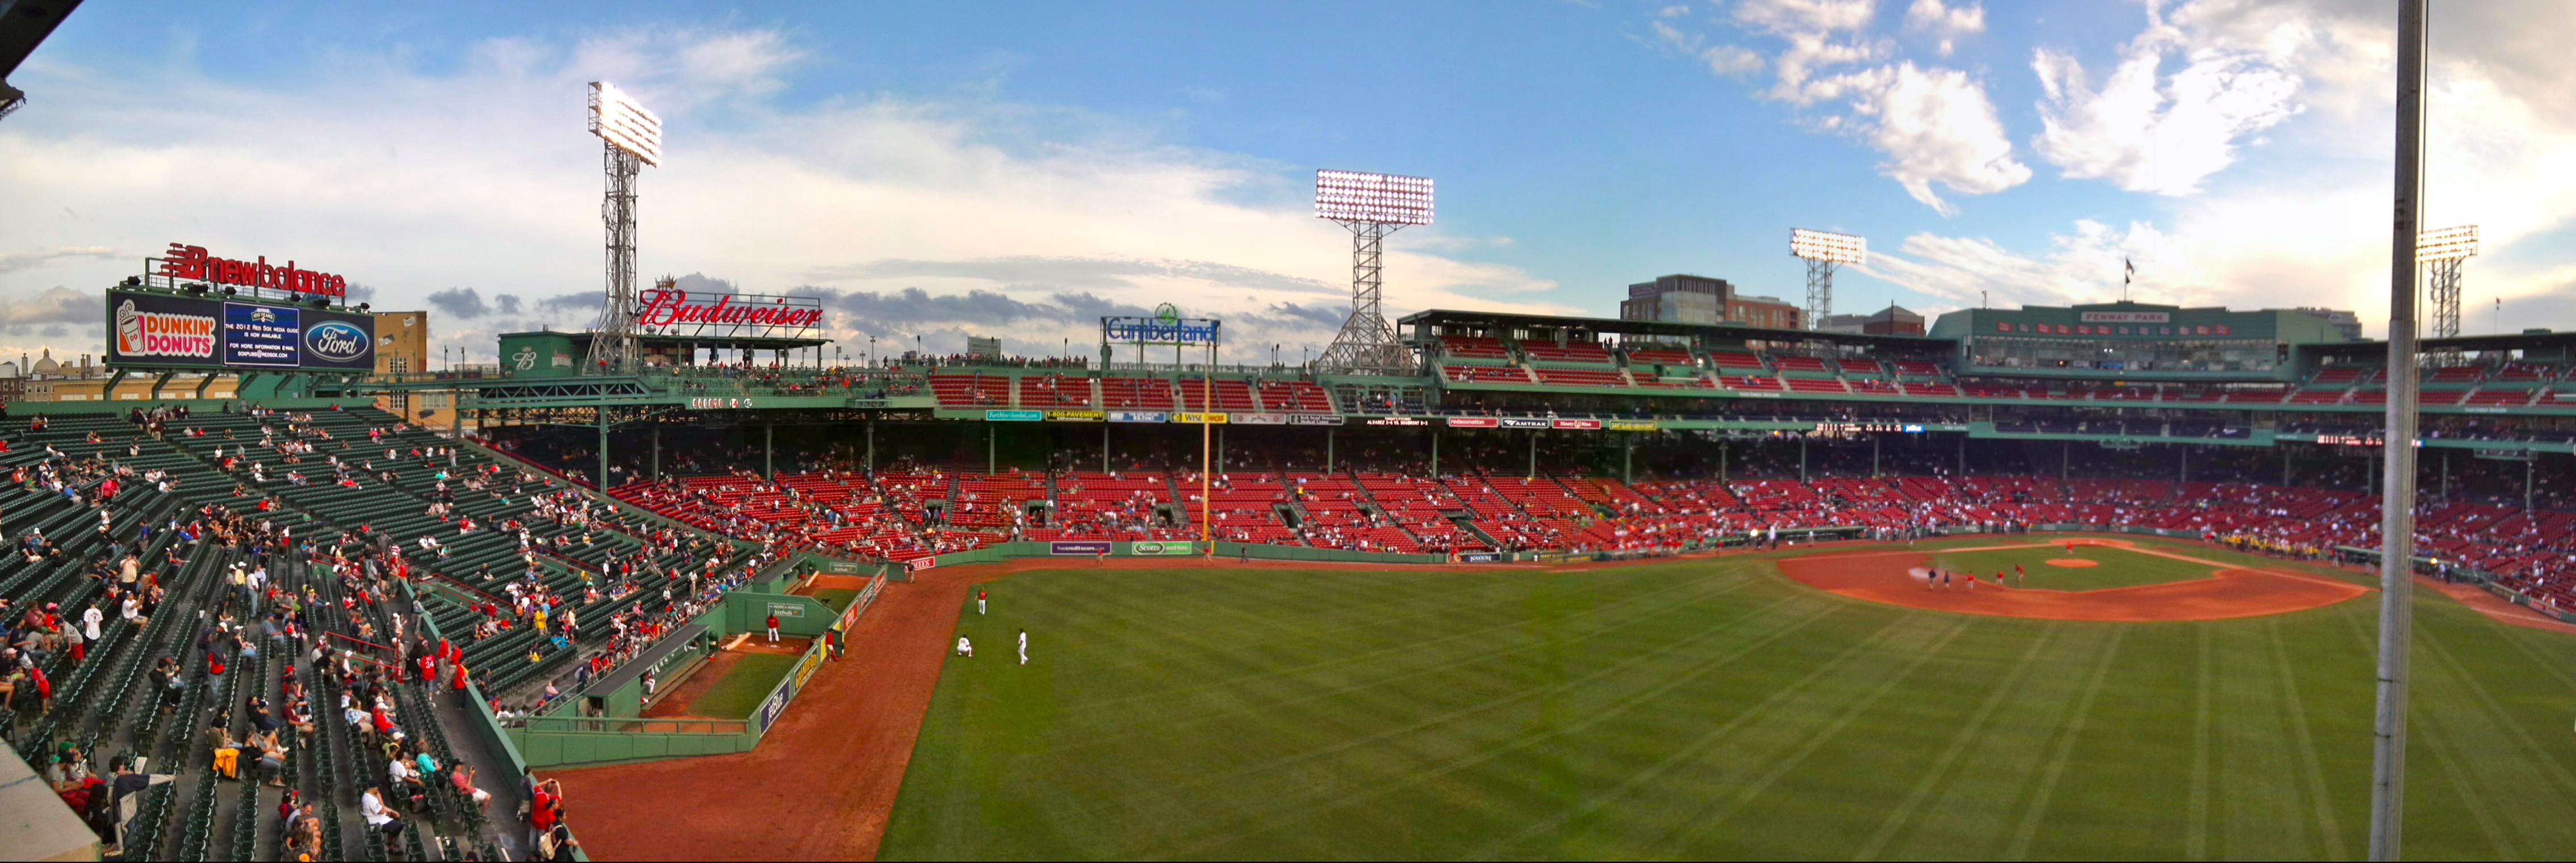 Green Monster 1 [ click to see the full size 4000 pixel image ] 4536x1520